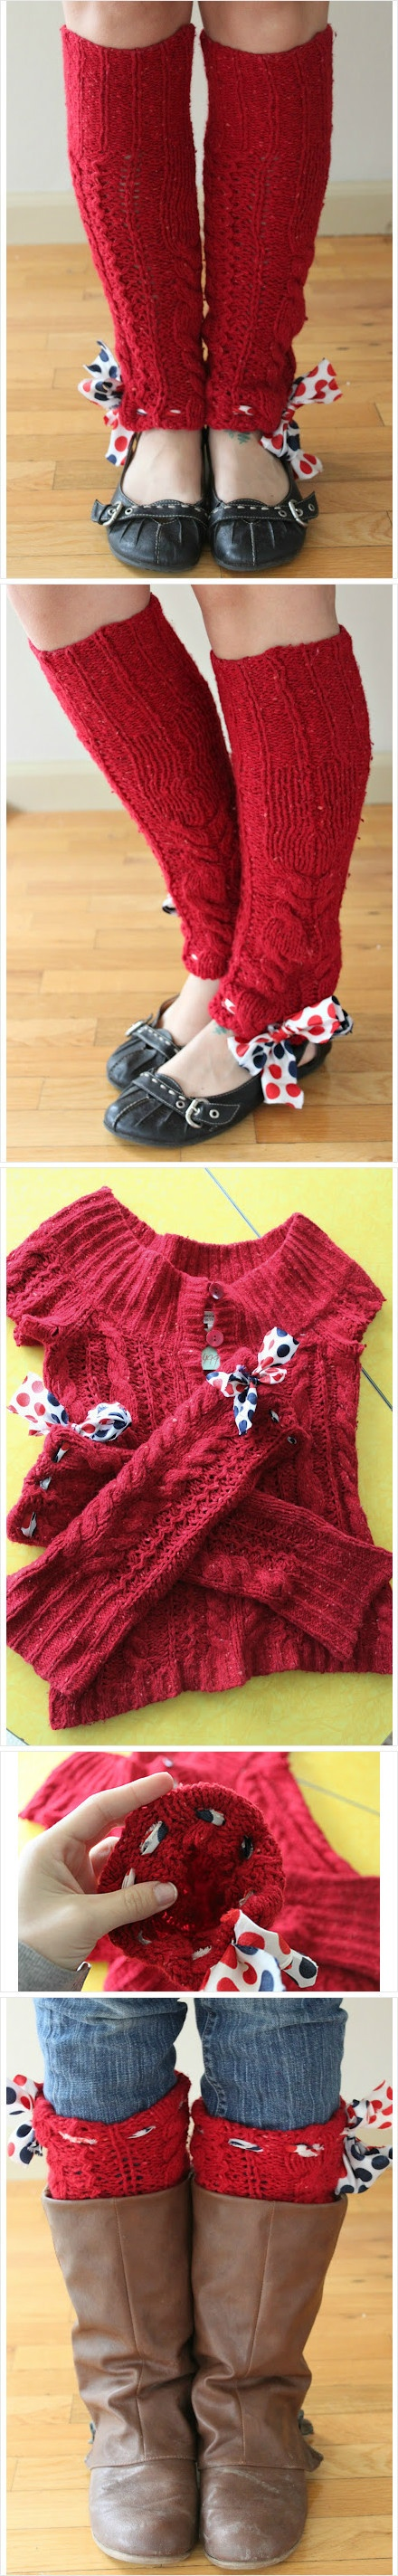 DIY: Upcycle sweater sleeves into leg warmers!... Ann you should have pinned this years ago LOL!!